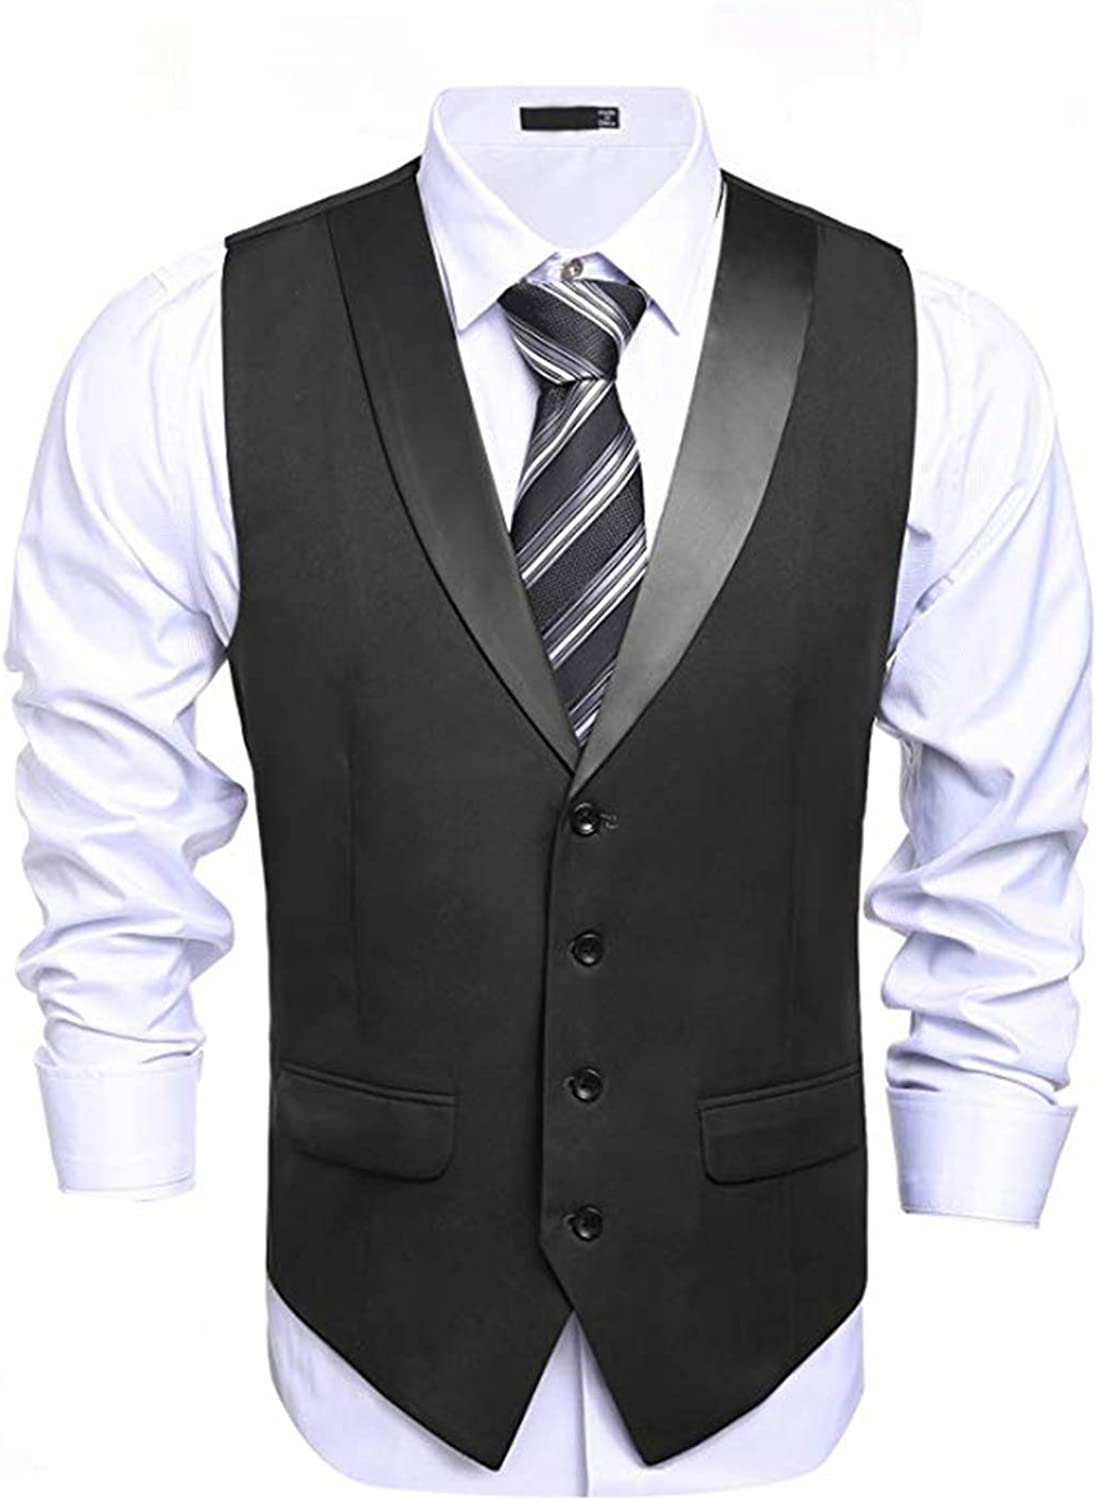 Houshelp Mens Vintage Suit Standing Collar Slim Fit Leisure Double-Breasted Blazer Business Wedding Party Jacket